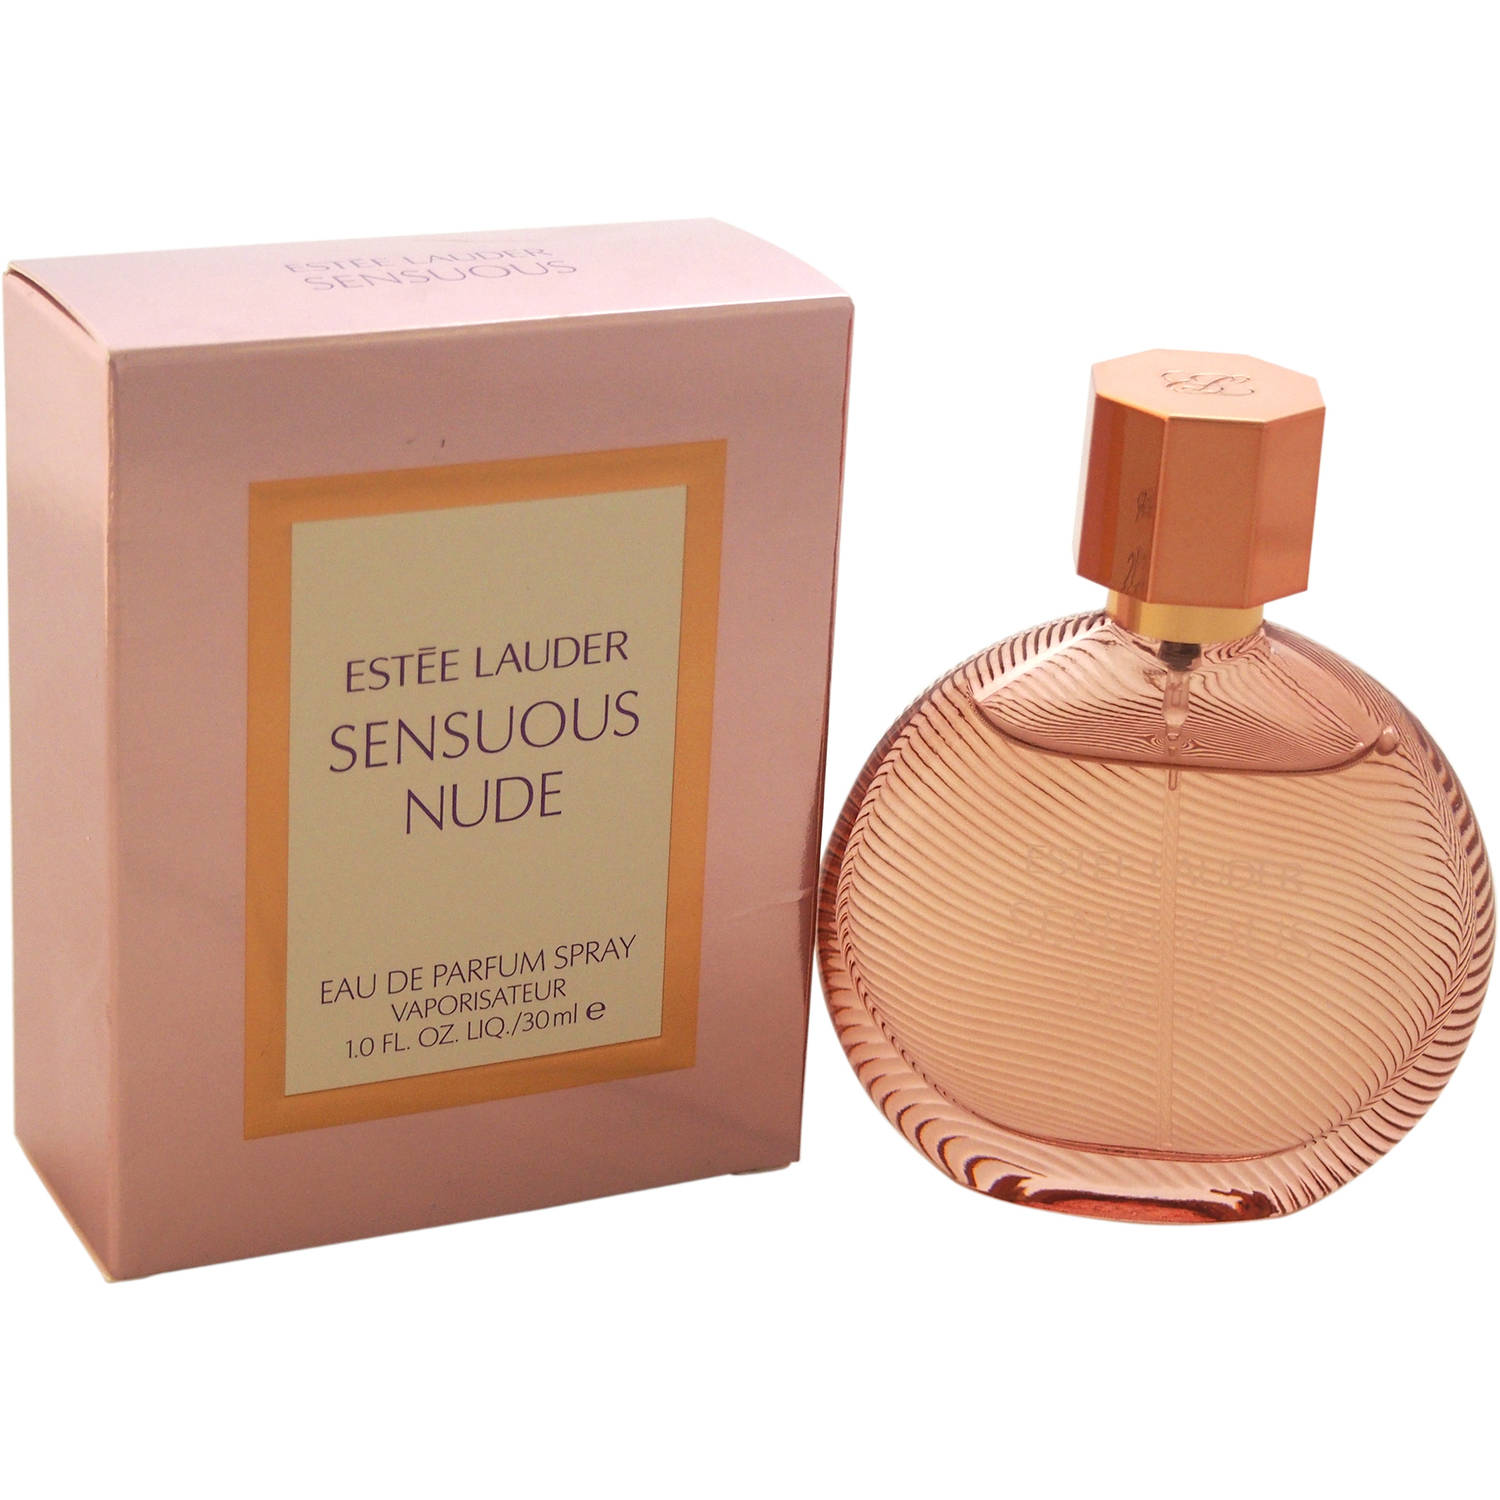 Estee Lauder Sensuous Nude EDP Spray, 1 fl oz